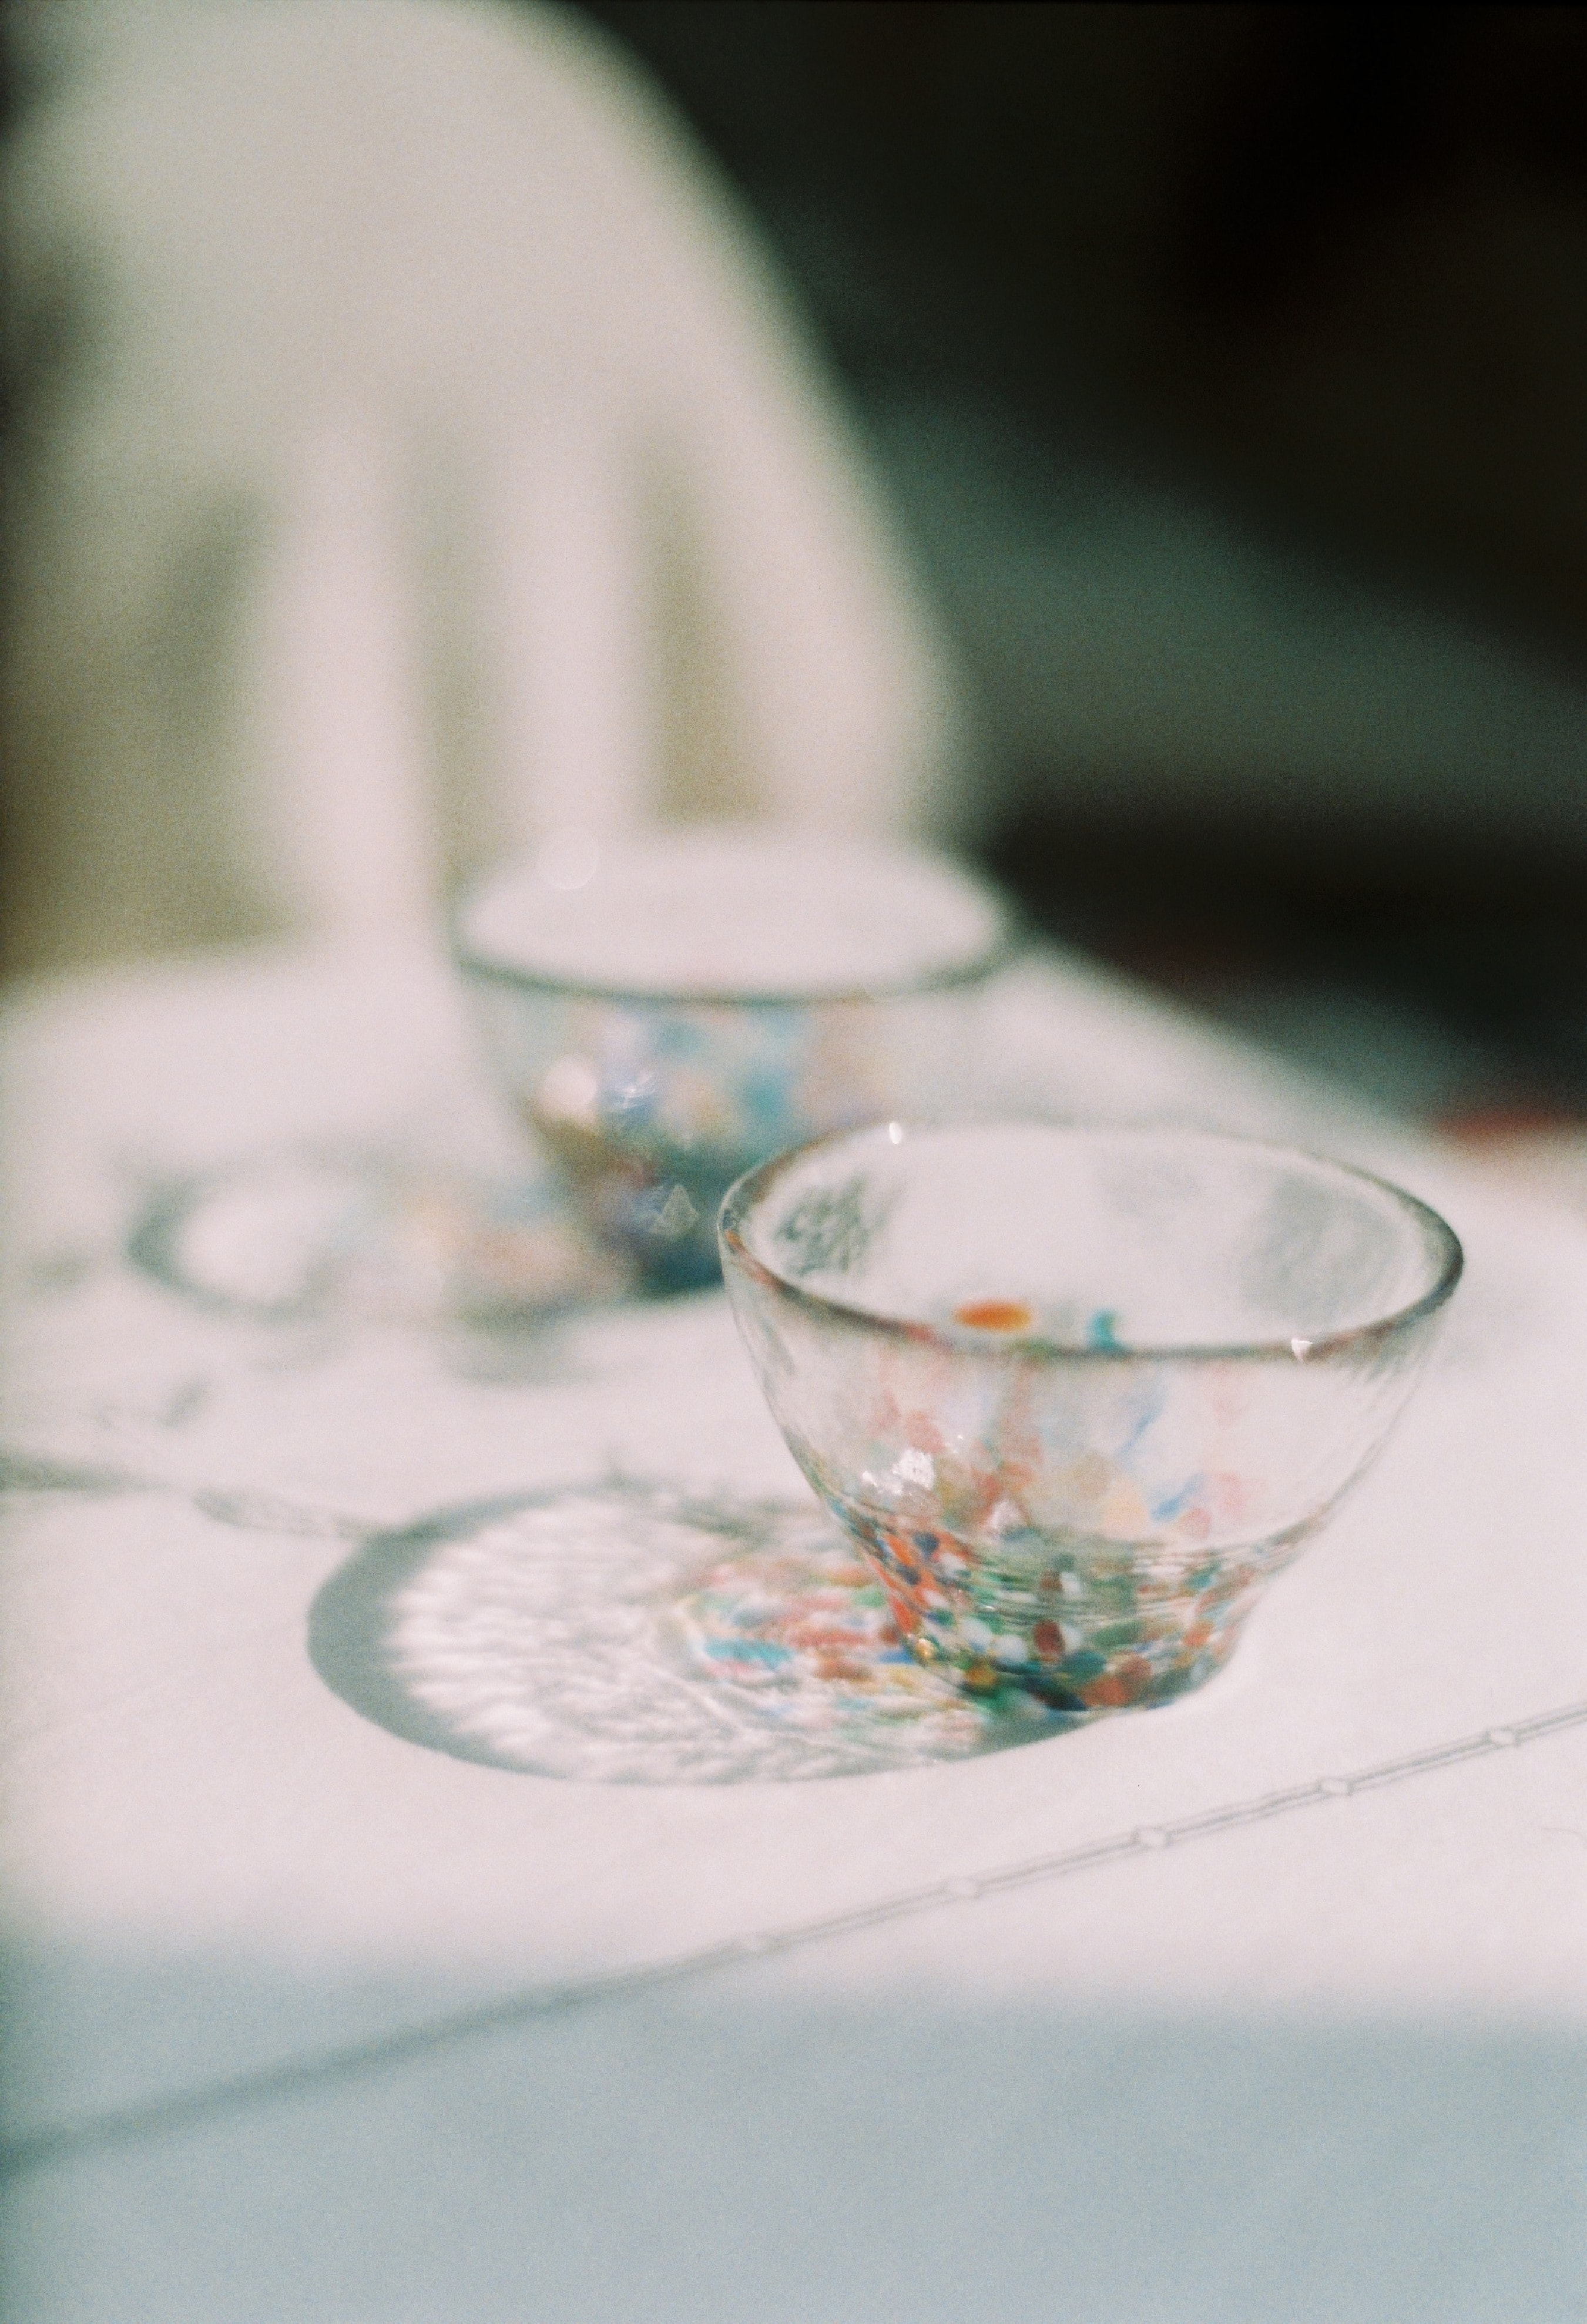 two empty glass bowls on white surfac e